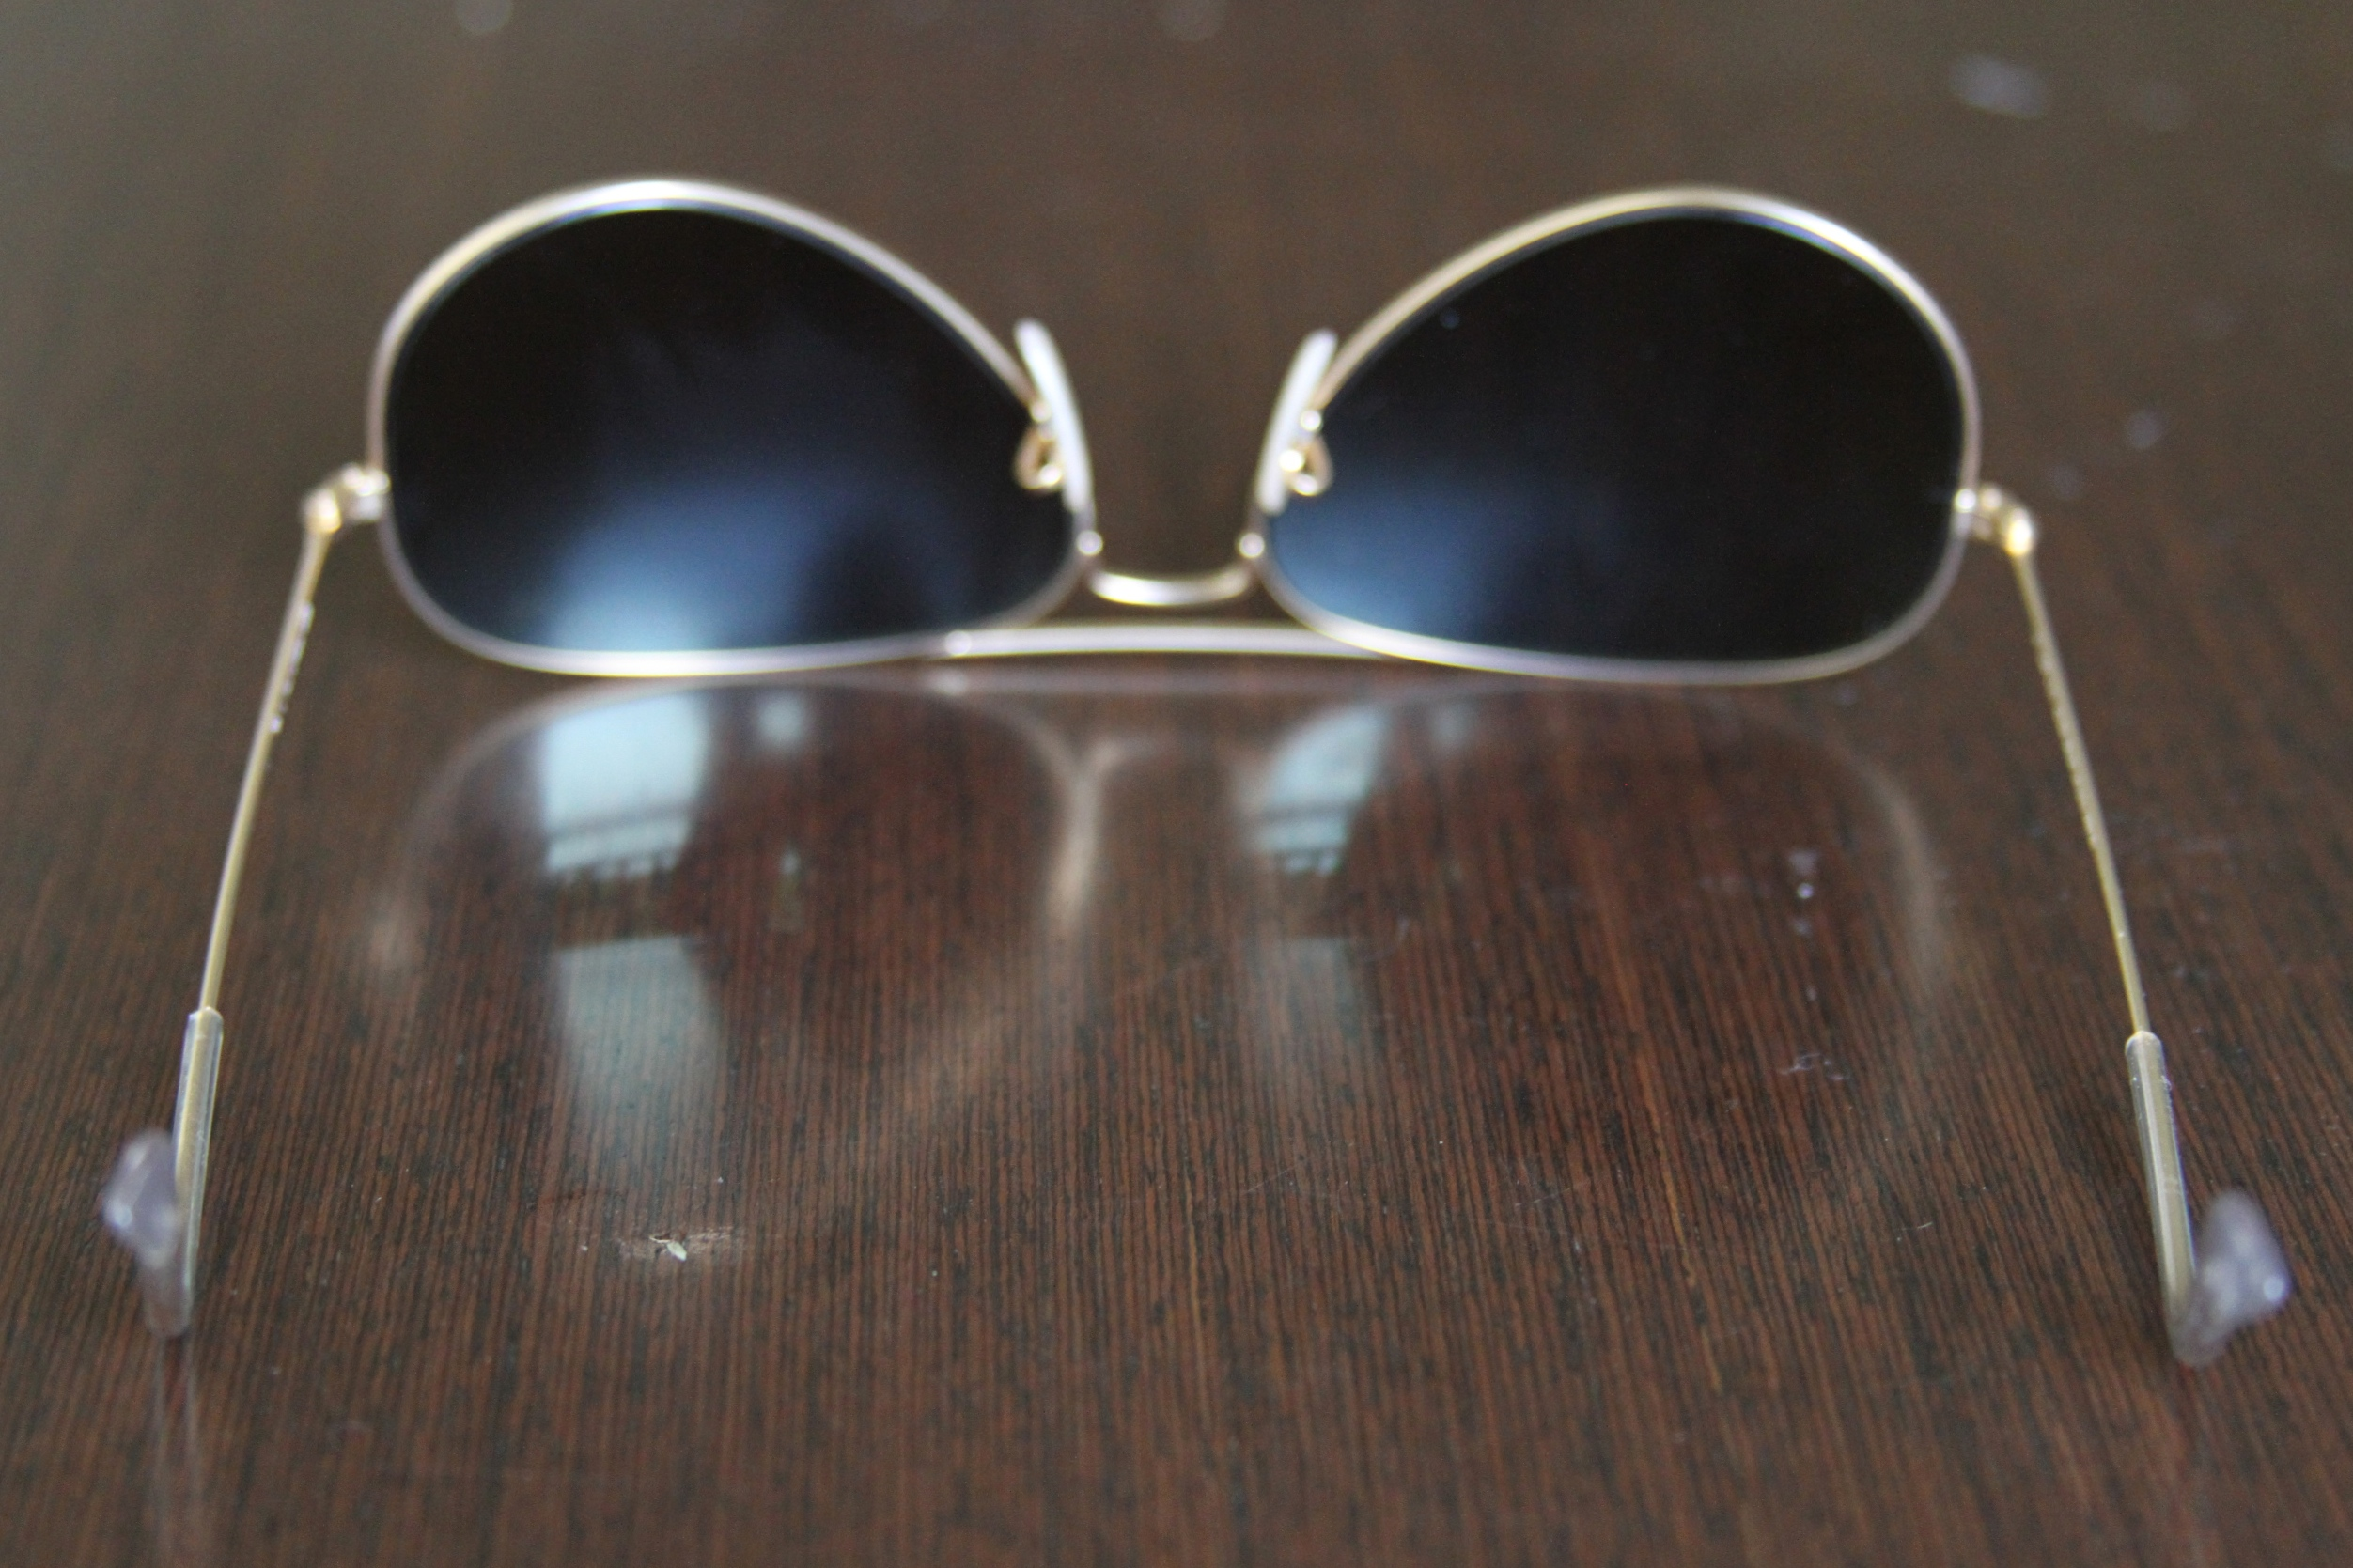 d3953c8efb Hold the arms of your sunglasses with your thumbs facing each other (as in  the picture below). Gently push in the earpiece inward.